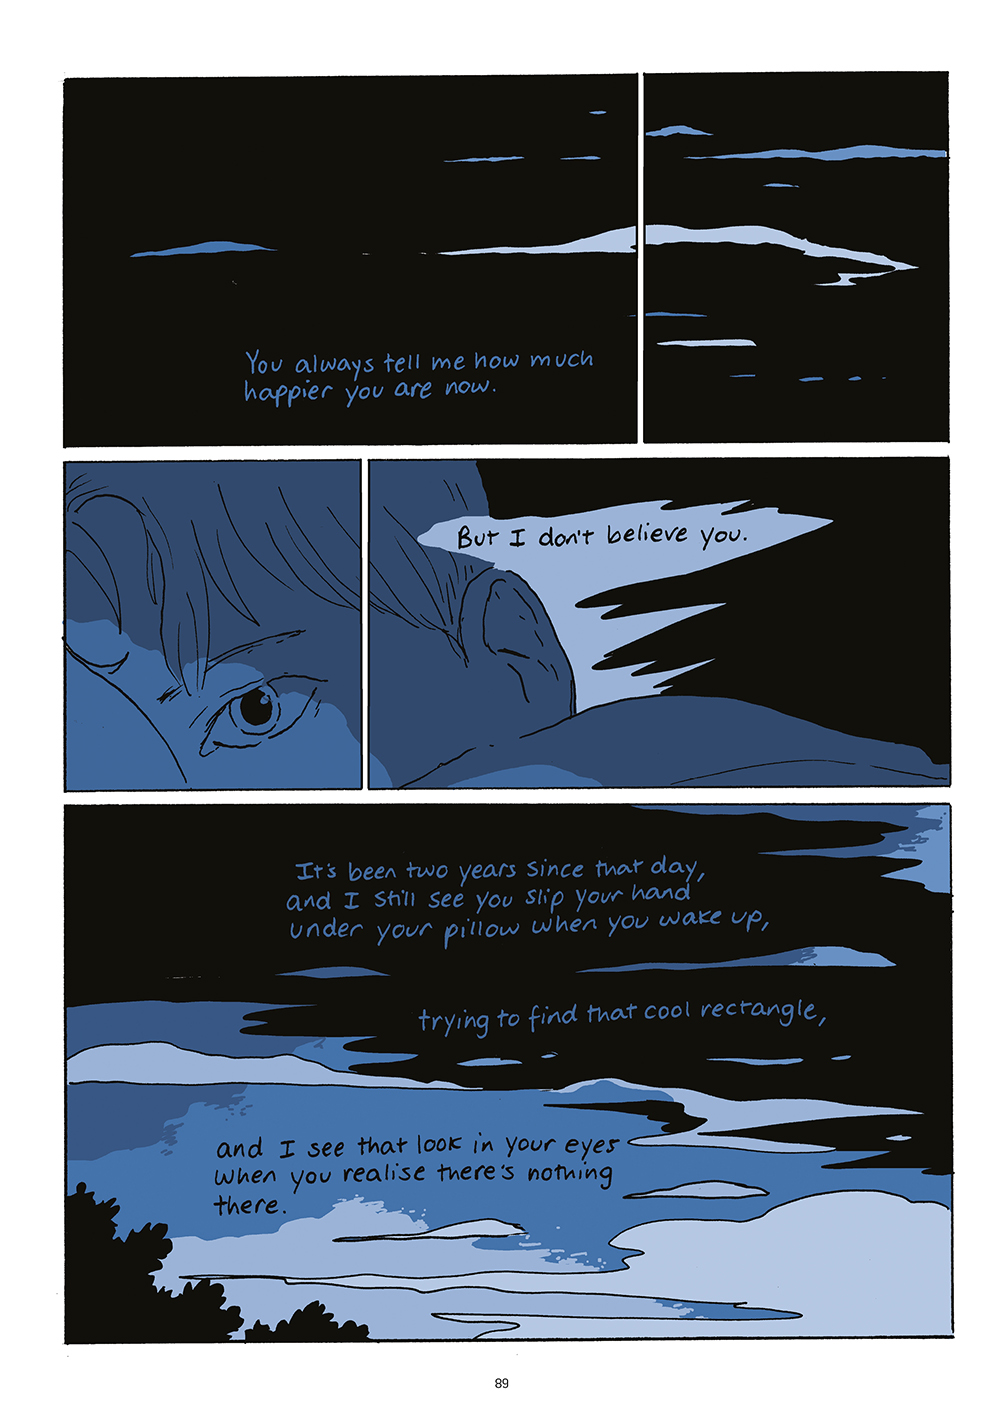 Tillie Walden - Contours - I Feel Machine